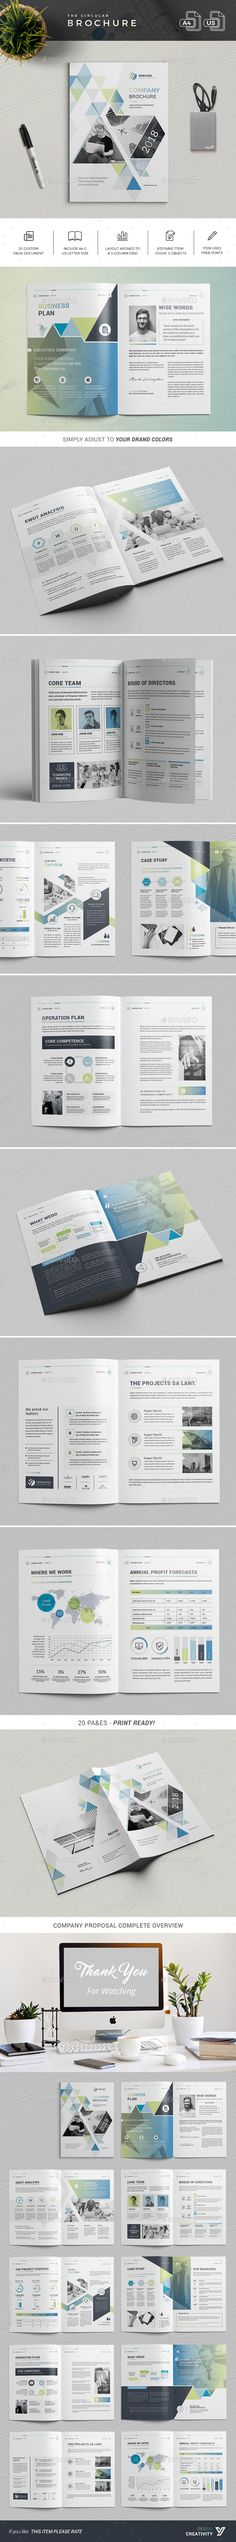 The Company Brochure Design Template InDesign INDD. Download here: https://graphicriver.net/item/the-company-brochure/22039268?ref=ksioks